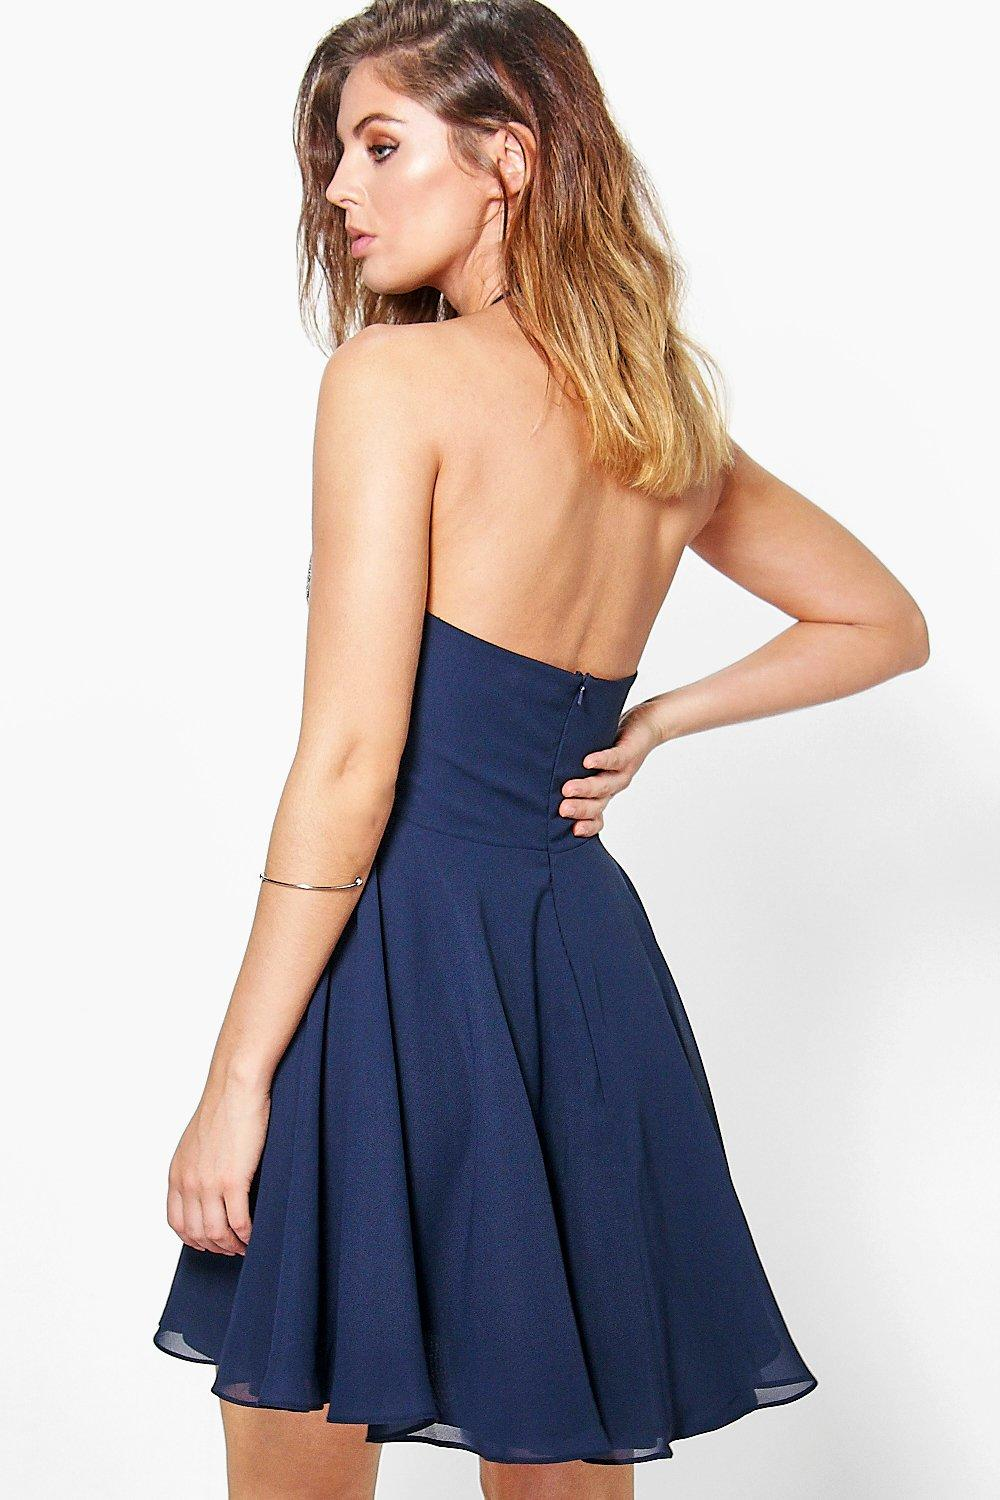 Boohoo Womens Boutique Alessya Embellished Scallop Skater